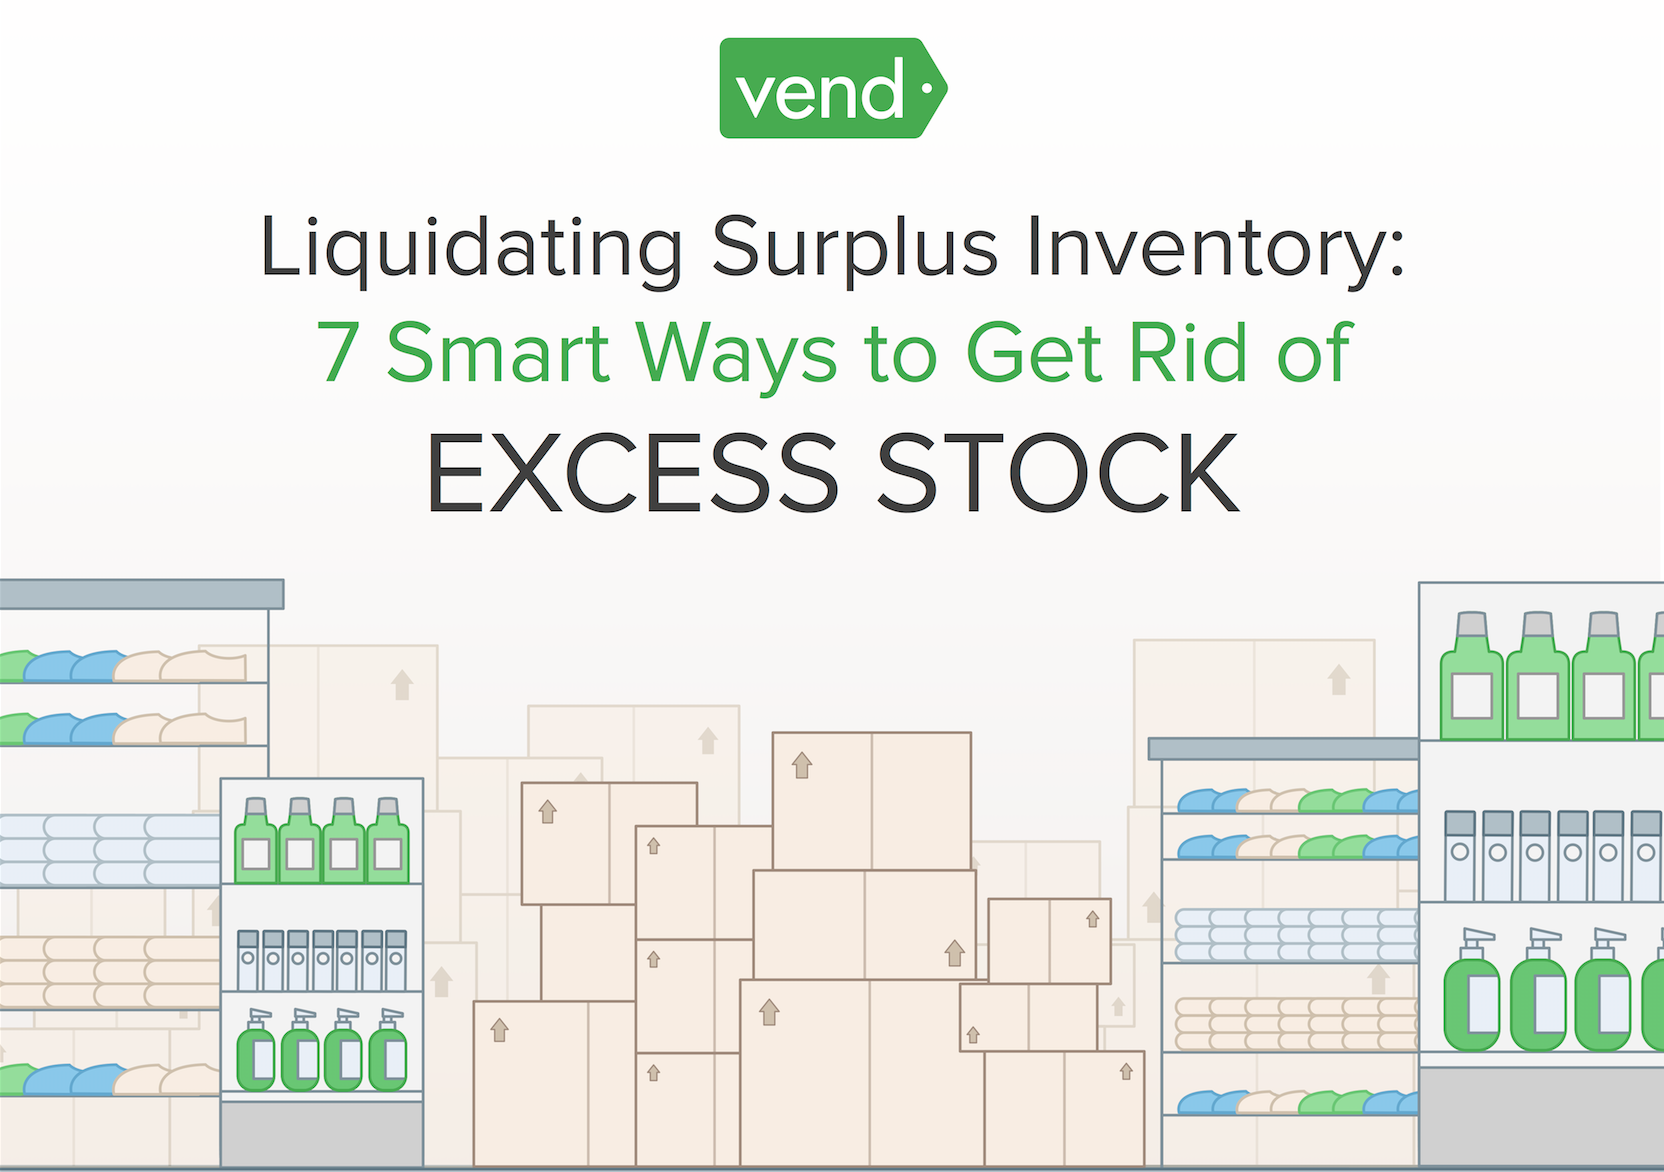 INFOGRAPHIC: 7 Smart Ways to Get Rid of Surplus Inventory - Vend